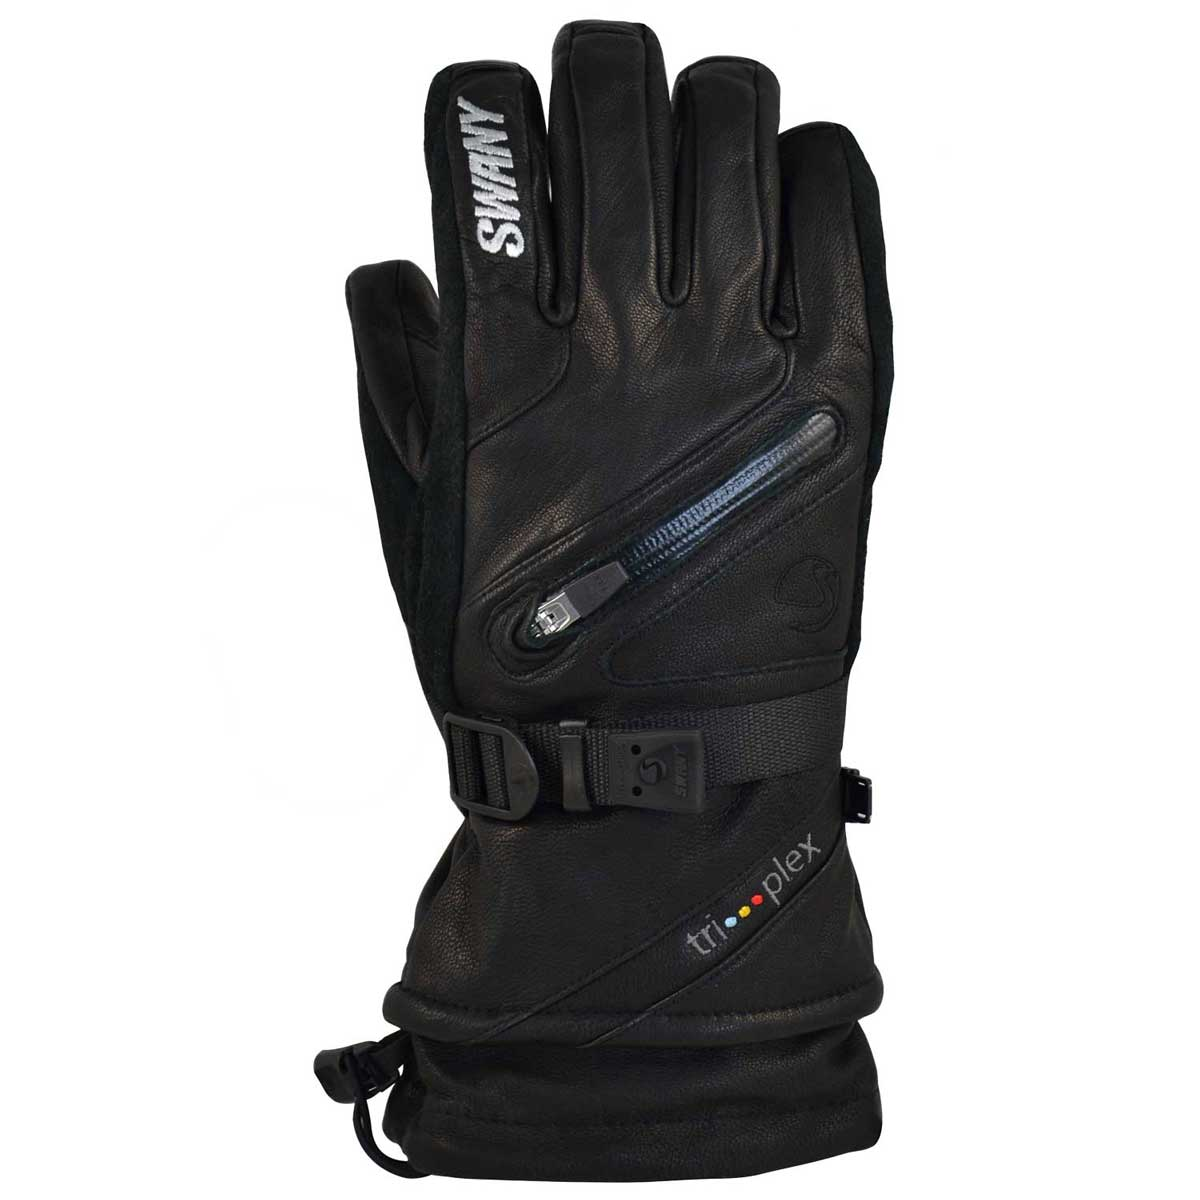 Swany Xcell women's glove in Black